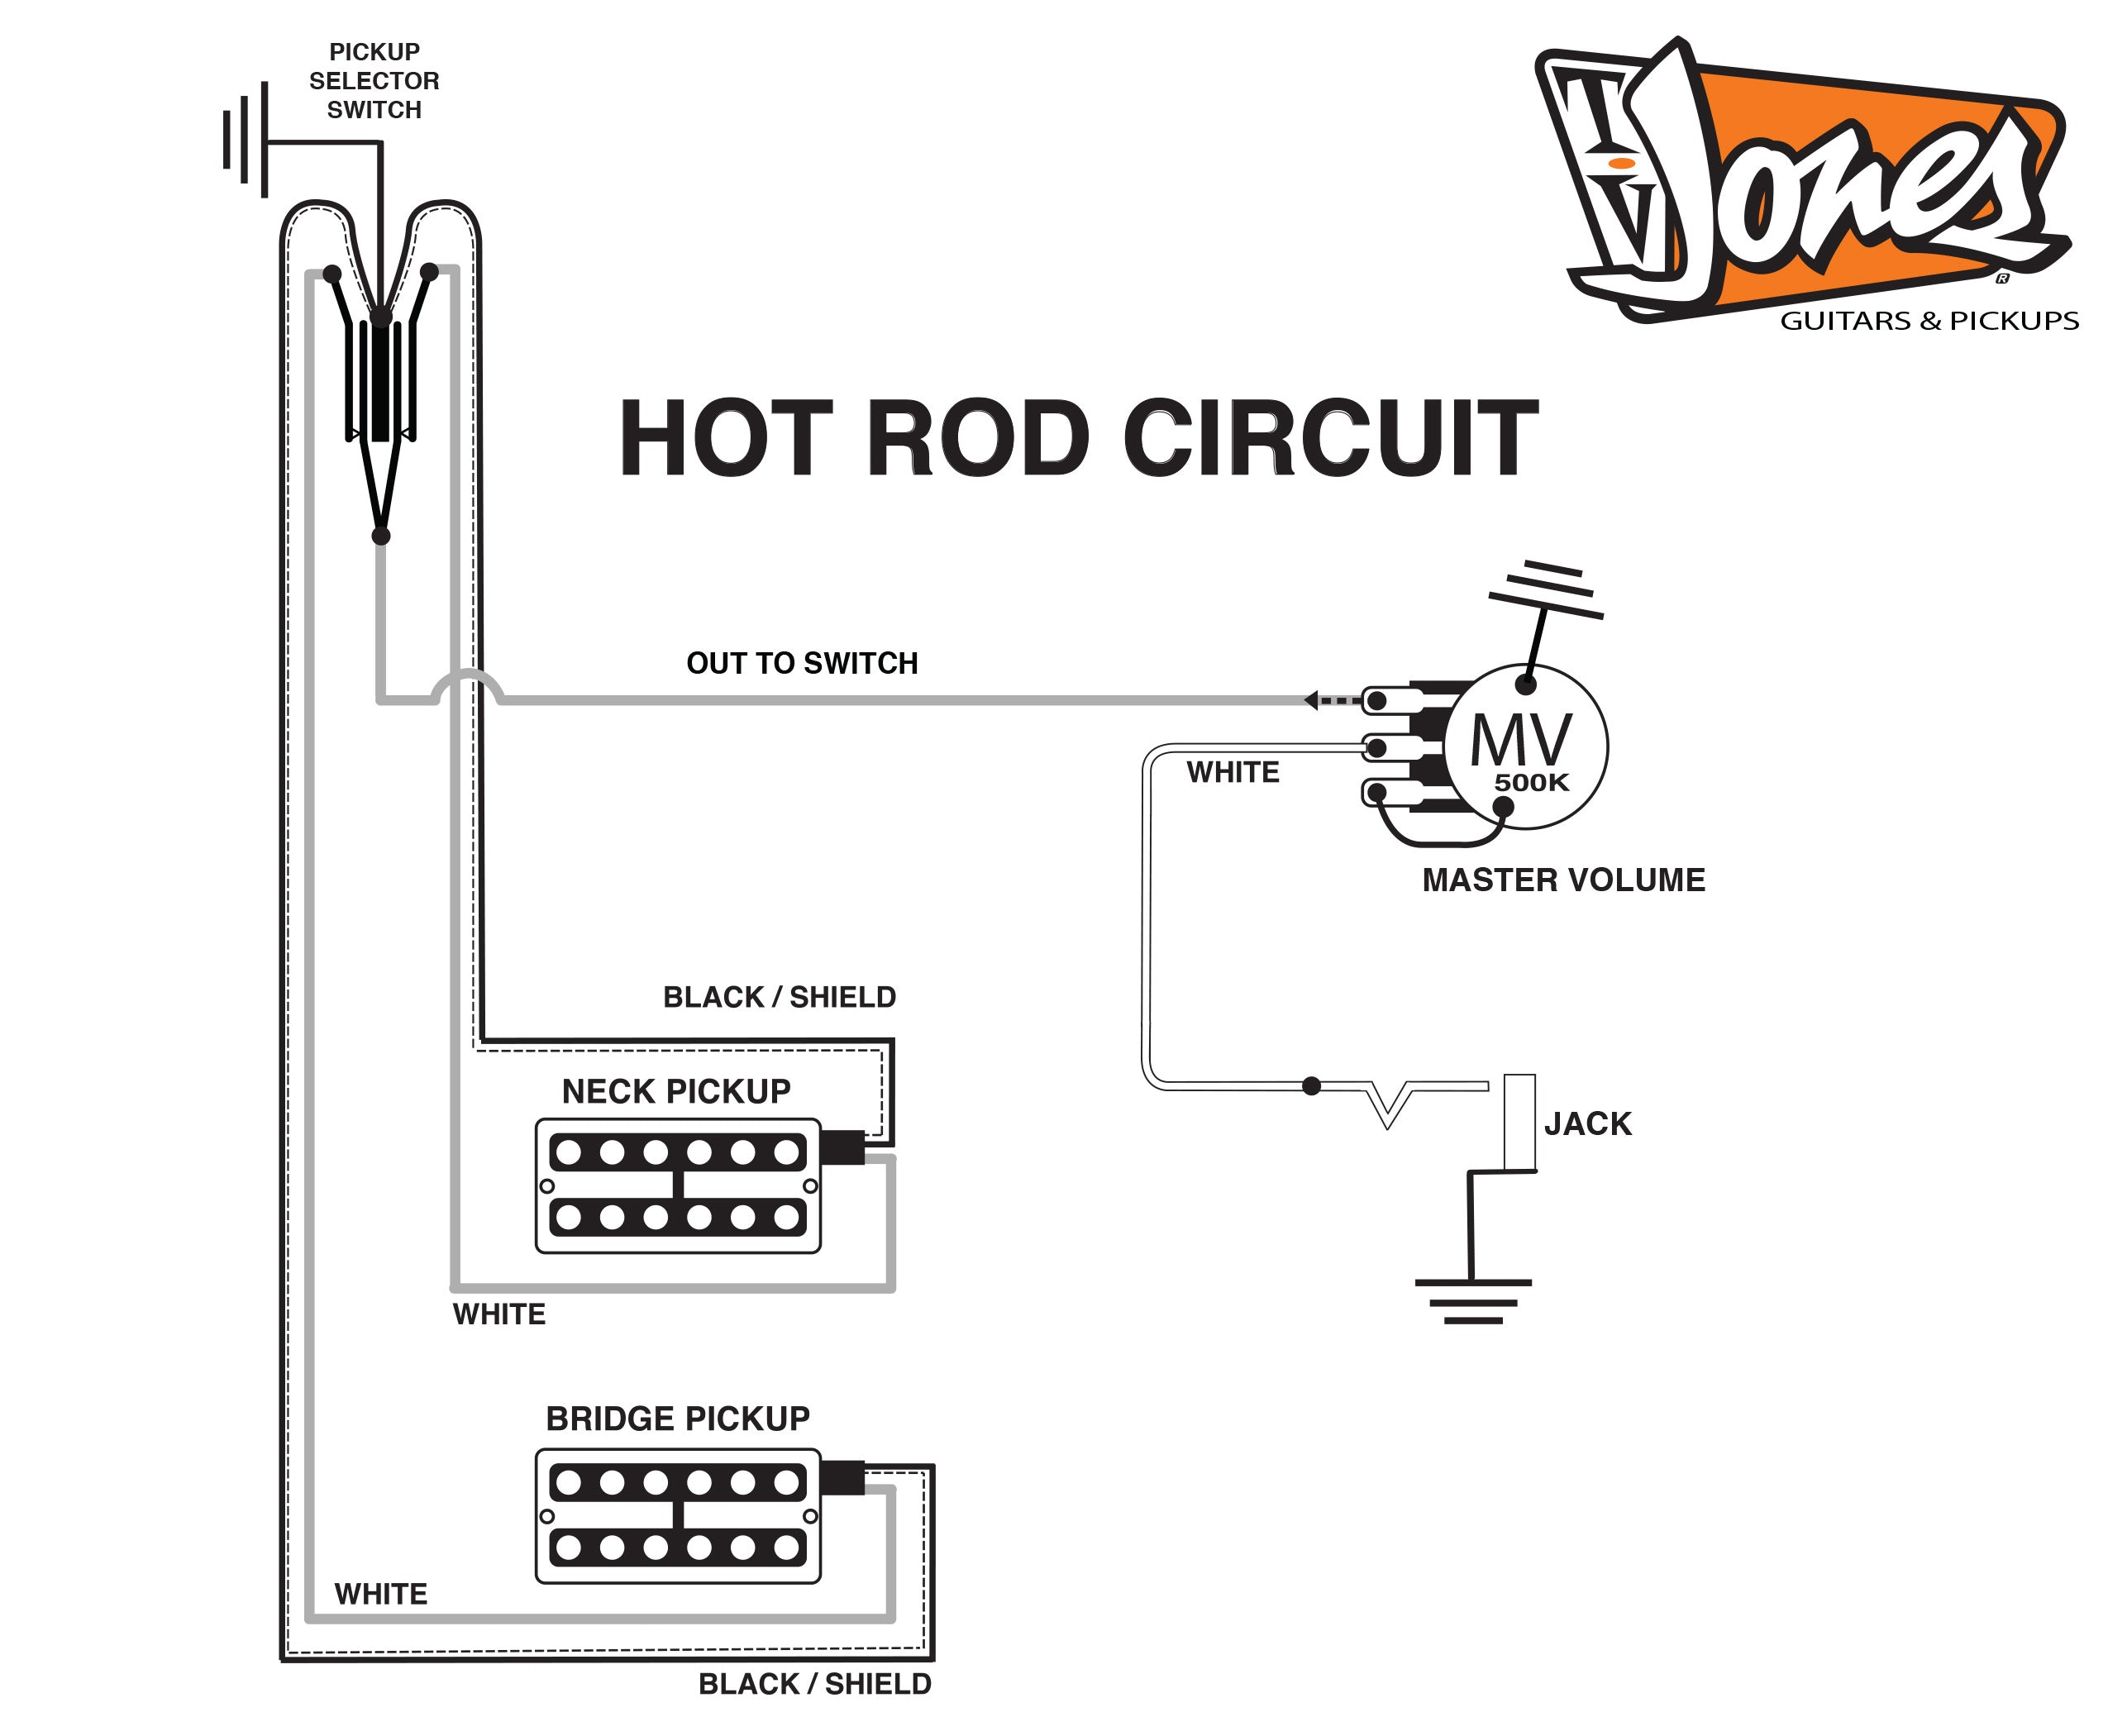 Mud Switch Broke  Convert To Hot Rod Wiring    The Workbench   The Gretsch Pages